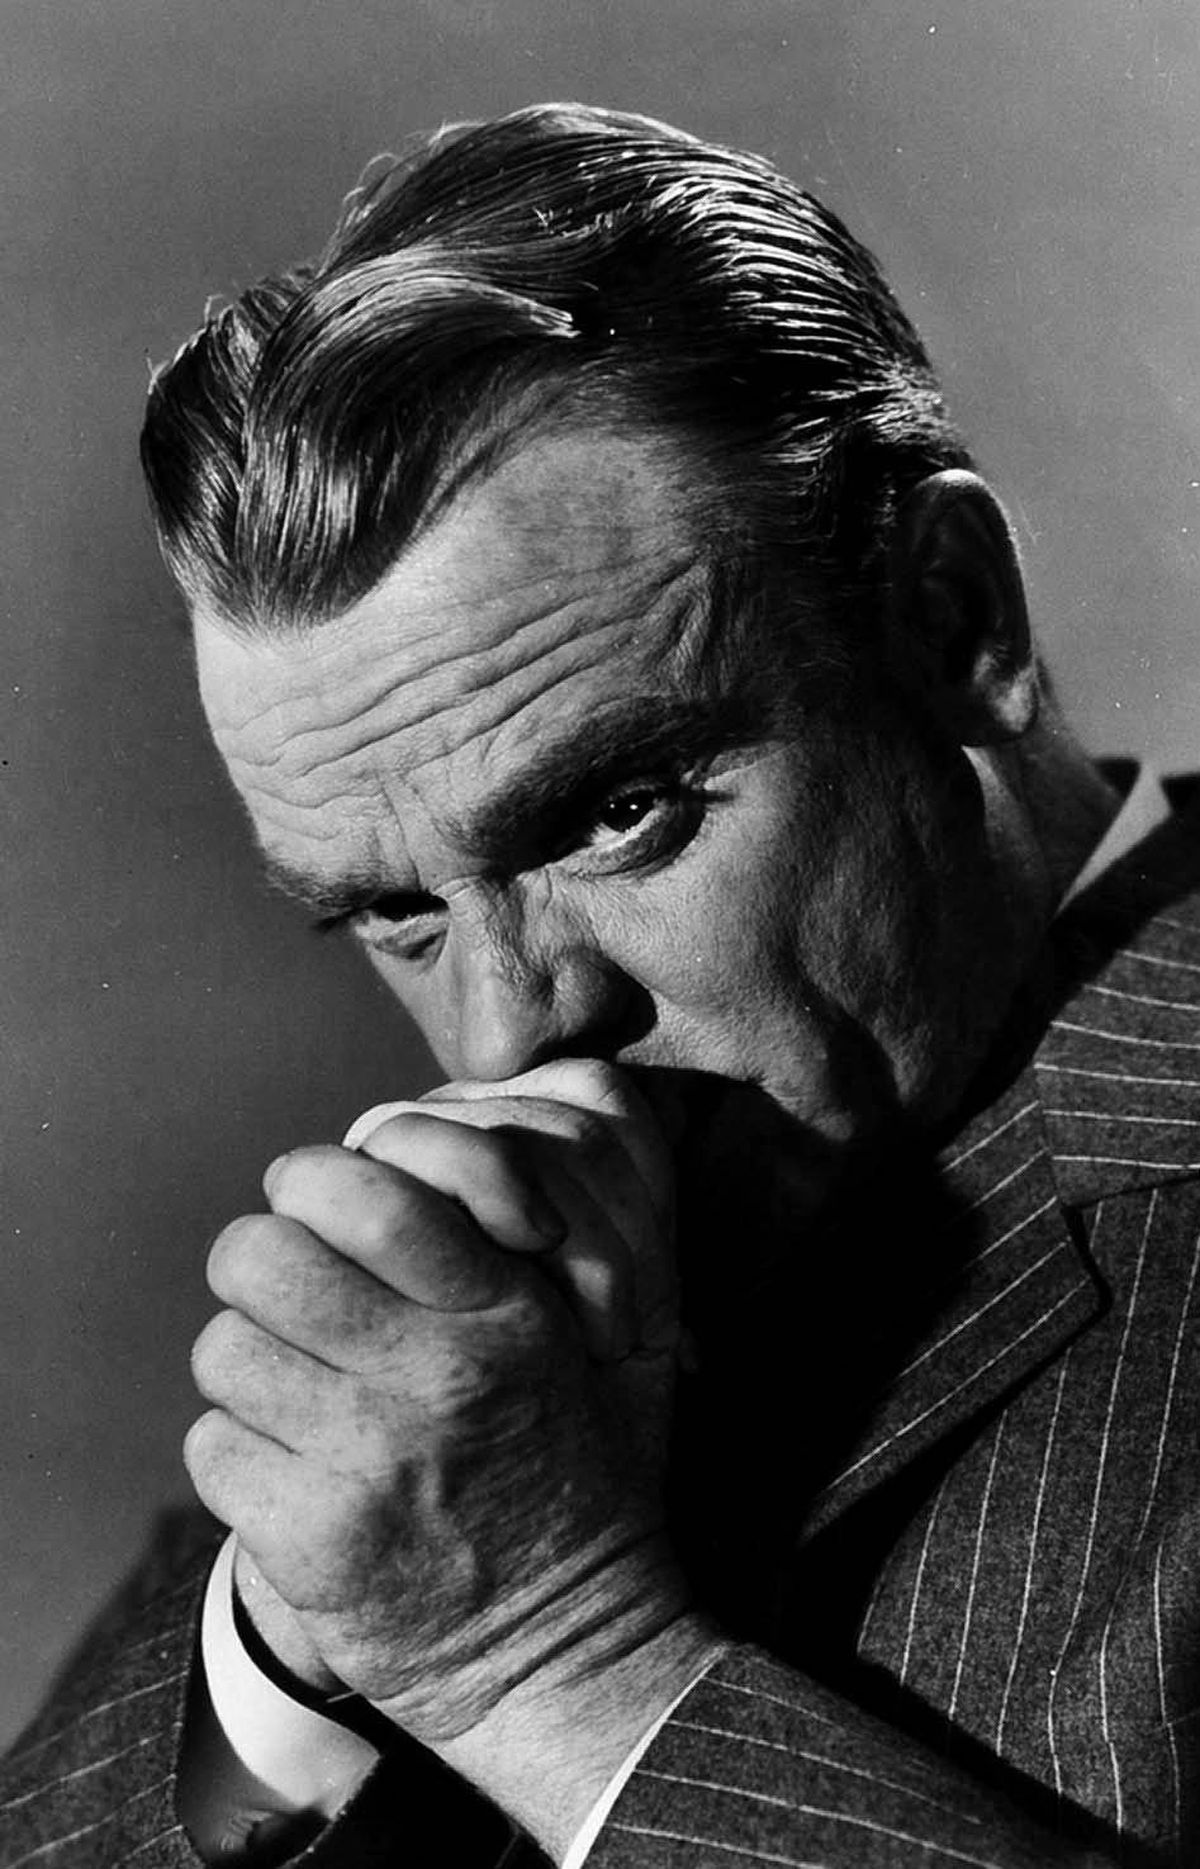 MOVIE Man of a Thousand Faces TCM, 11 p.m. ET; 8 p.m. PT The late James Cagney delivers an endearing performance in this 1957 biopic of silent-film star Lon Chaney, best known for his screen portrayals of The Phantom of the Opera and The Hunchback of Notre Dame. The film depicts Chaney's early days and his marriage to the flighty cabaret singer Cleva (Dorothy Malone). When Cleva walks out on Chaney and their newborn son, the vaudevillian turns to his only available source of income: Hollywood, where his uncanny gift for disguise enables him to play several roles in the same film. Watch for a young Robert Evans as studio boss Irving Thalberg.